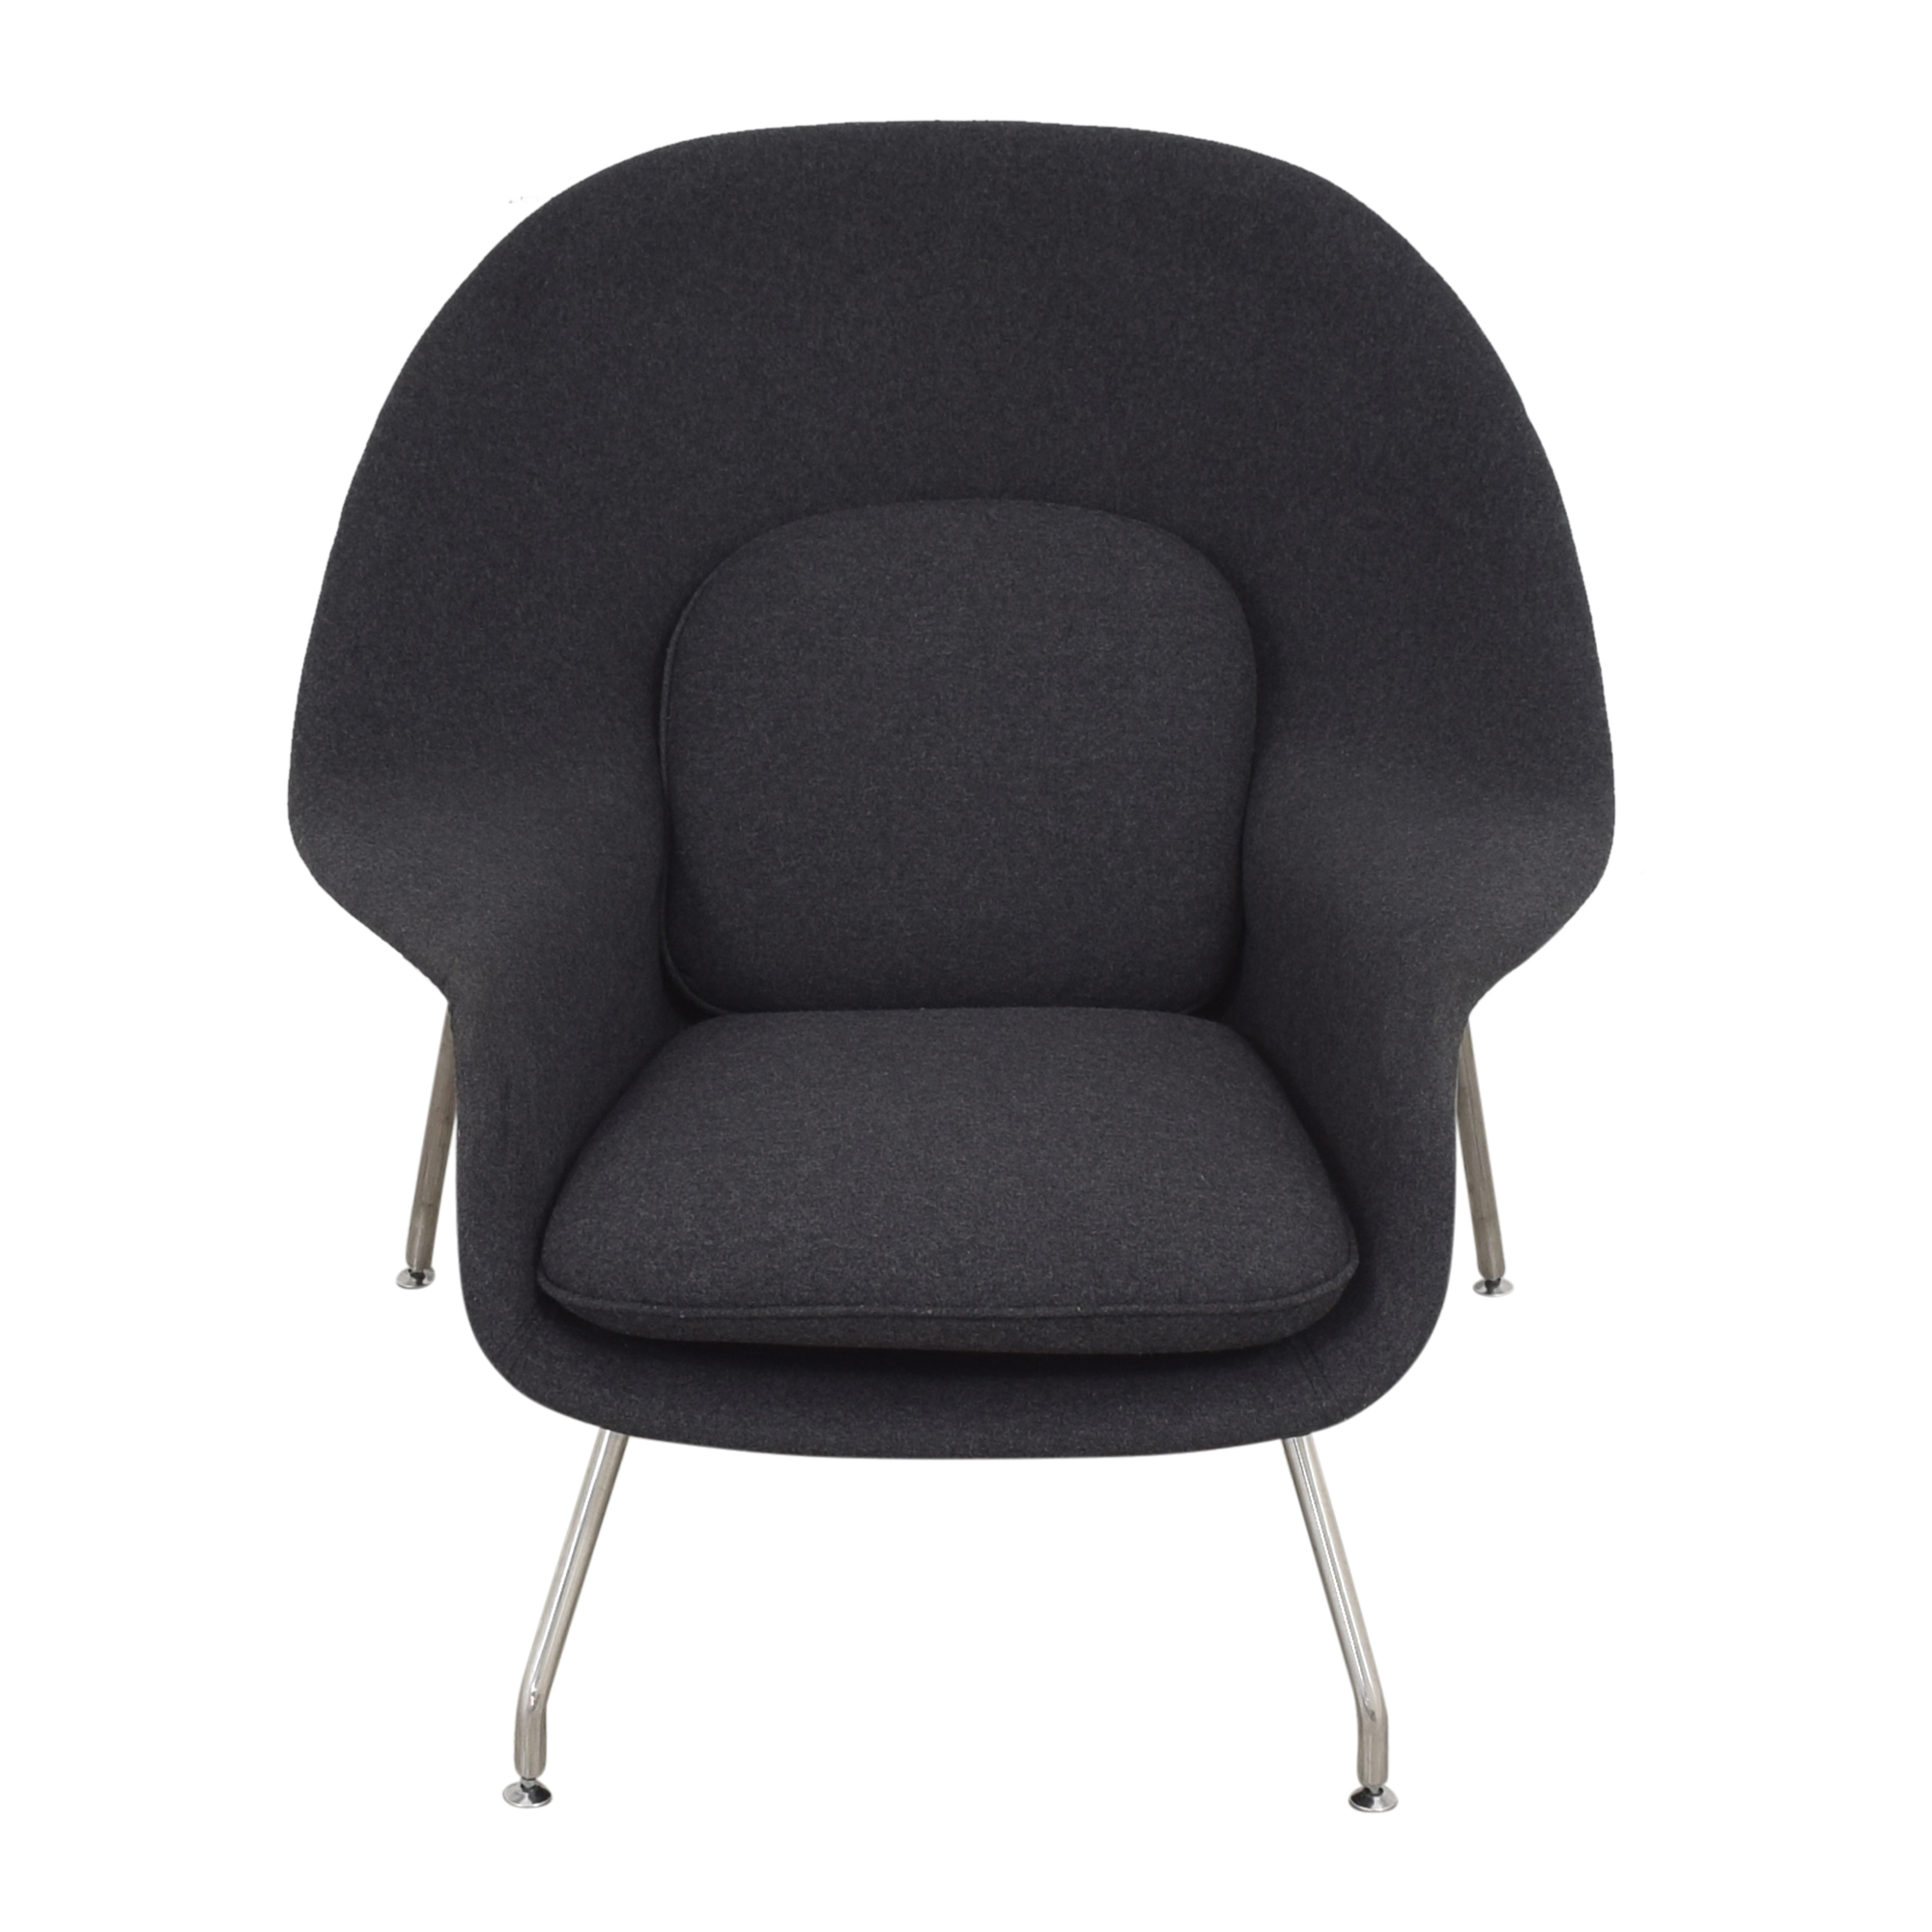 shop  Womb-Style Replica Chair online